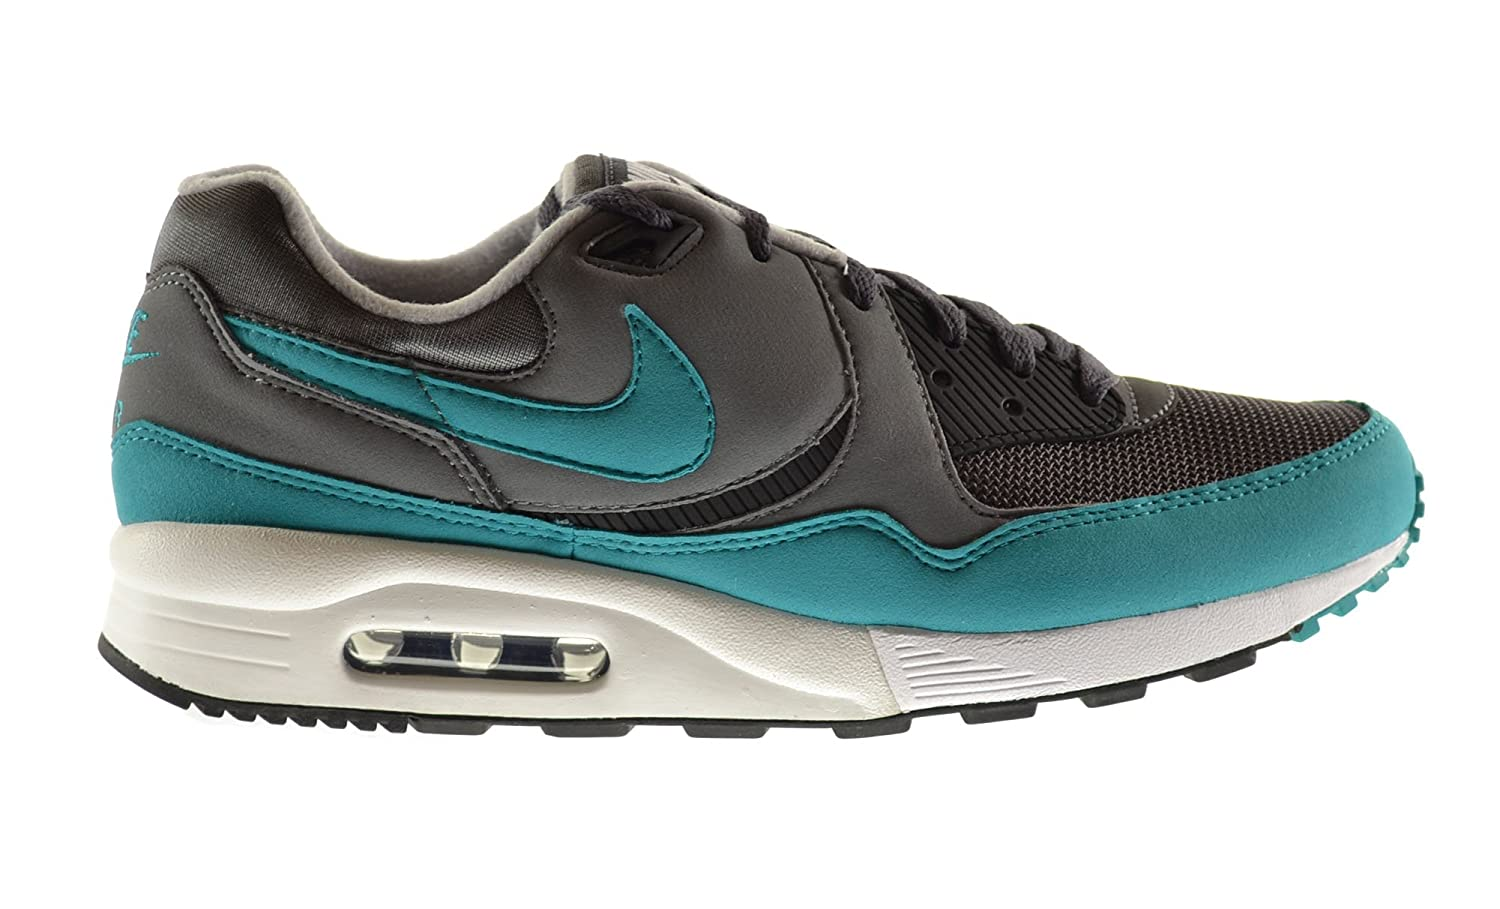 premium selection add89 0dc9f Amazon.com   Nike Air Max Light Essential Men s Shoes Iron Ore Turbo  Green-Clay Grey-Black 631722-002 (14 D(M) US)   Athletic